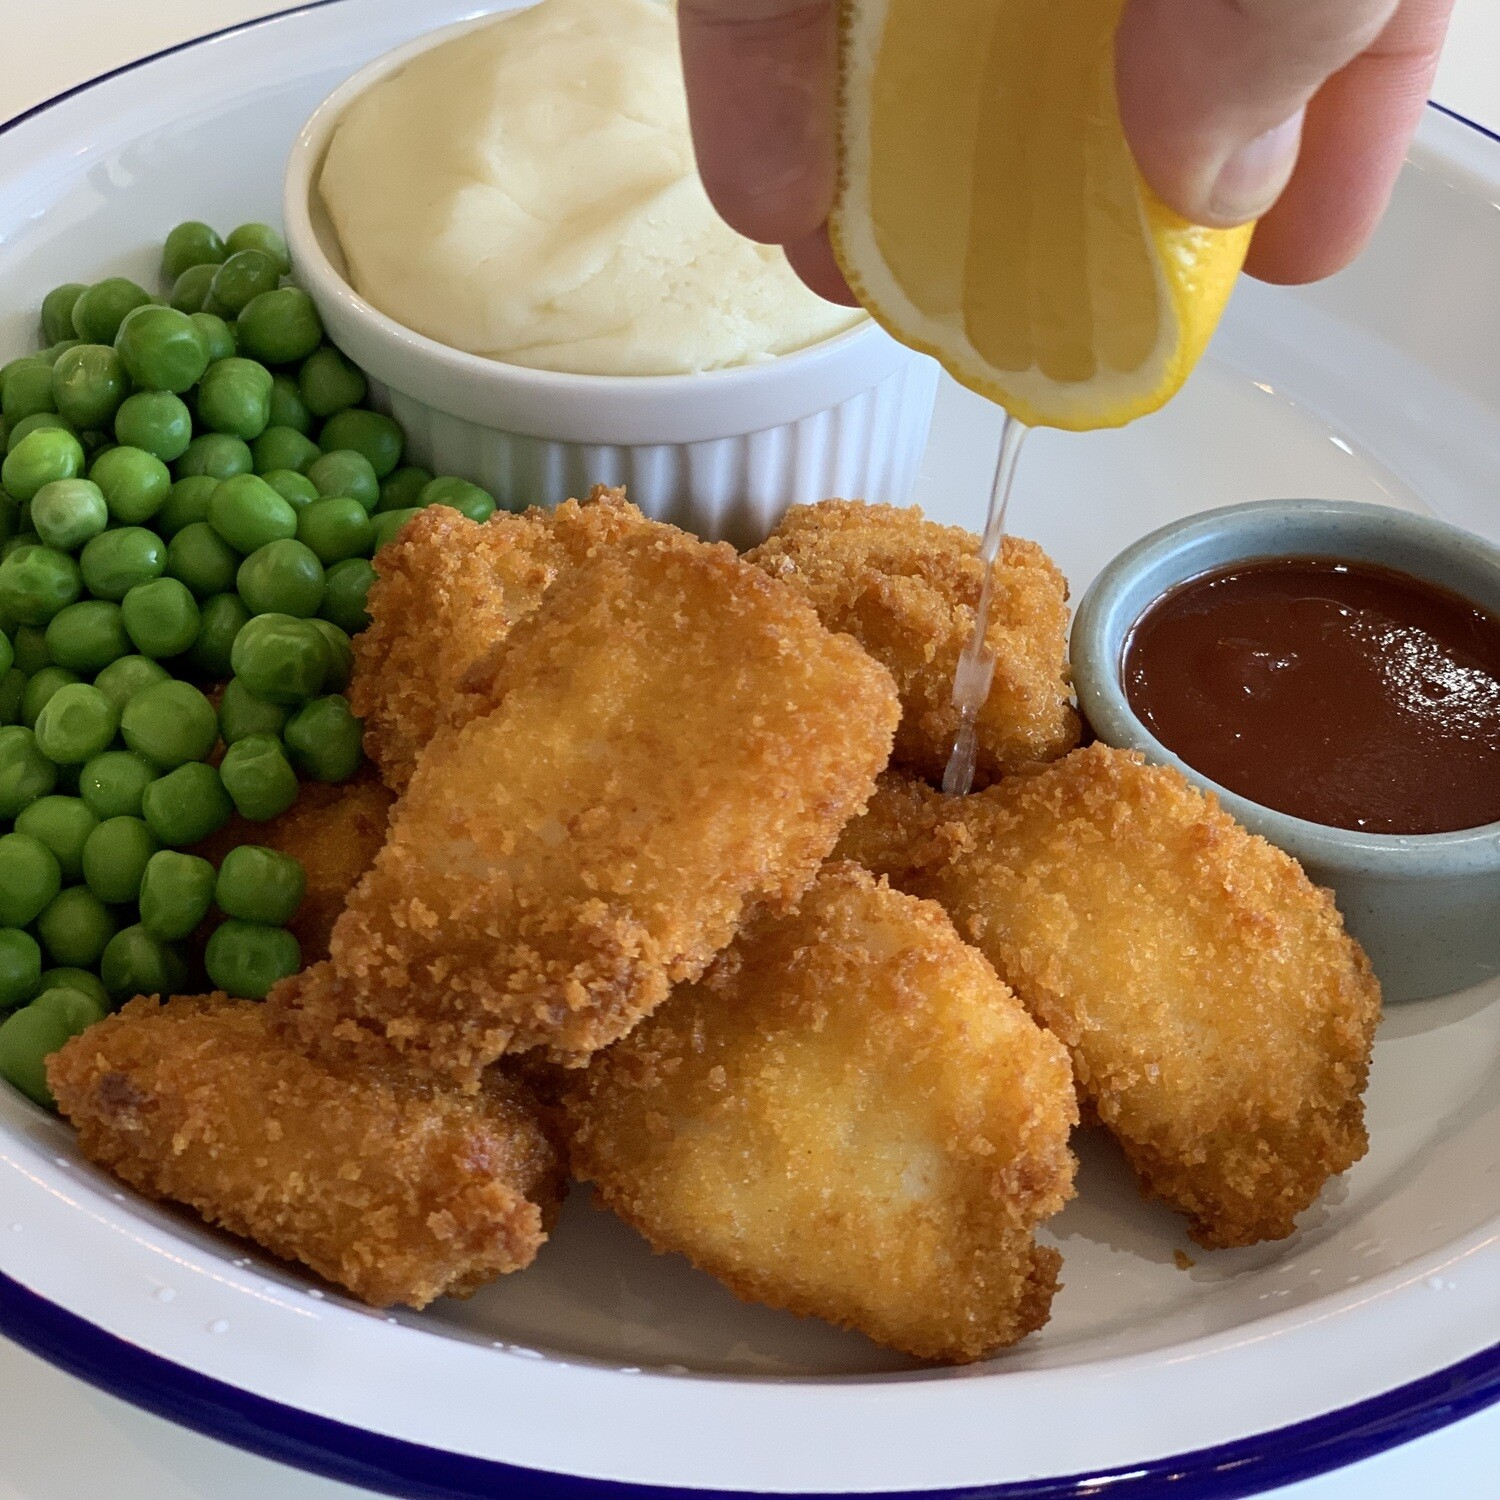 Real Free Range Chicken Nuggets (Serves 2-3)